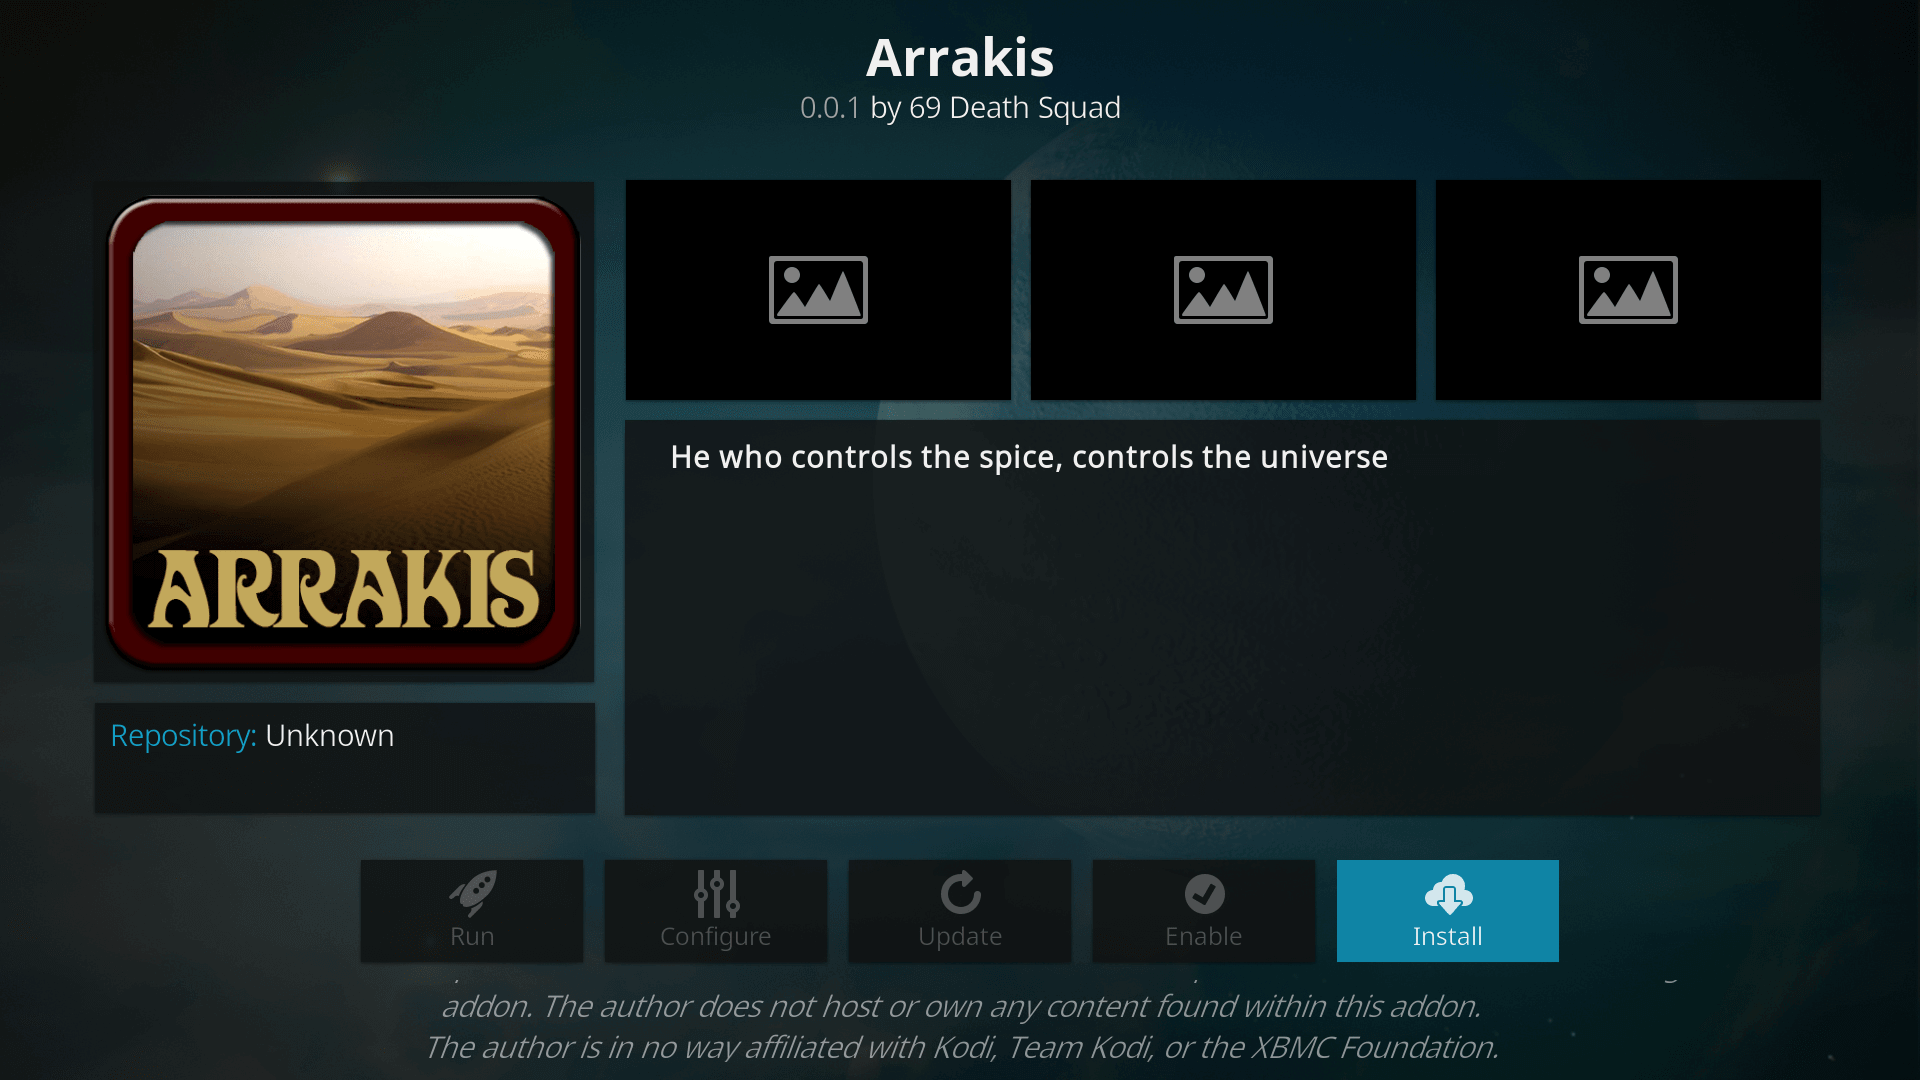 How to Install the Arrakis Addon on Kodi 17.6 Krypton